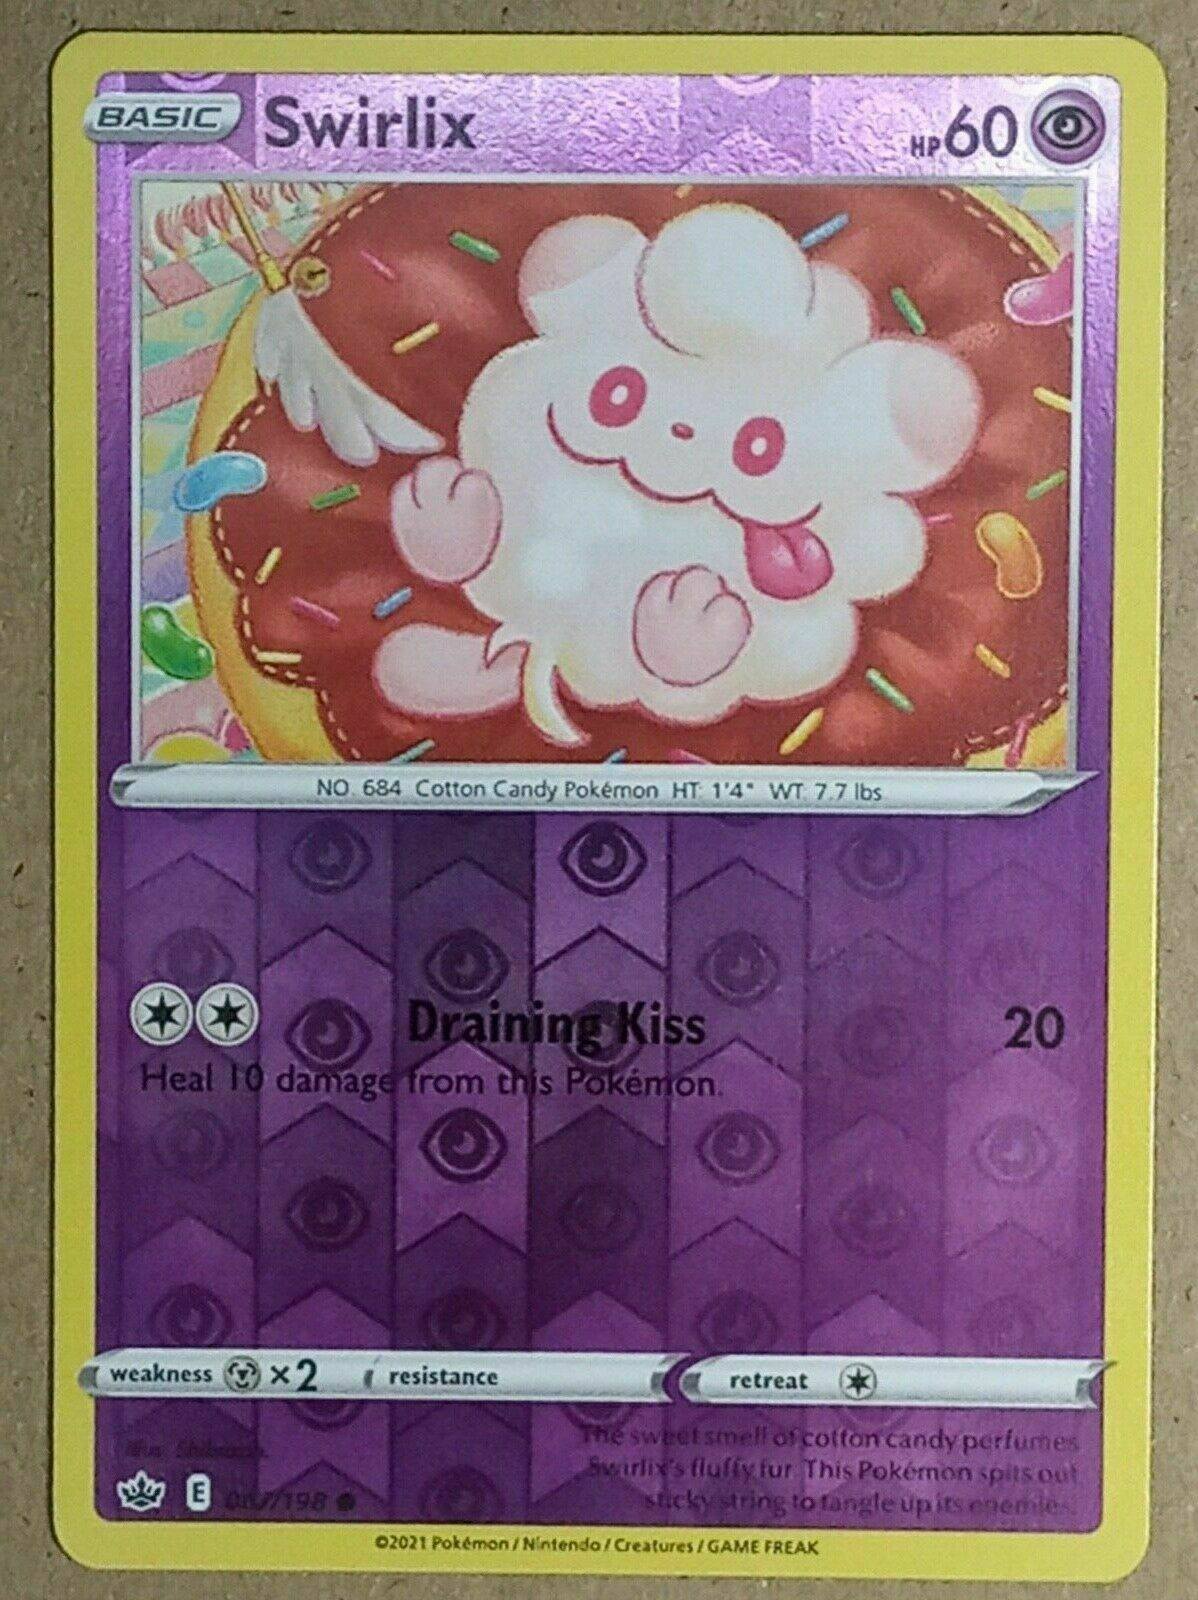 POKEMON CARD - Swirlix 067/198 - Reverse Holo - Chilling Reign - NM - Image 1